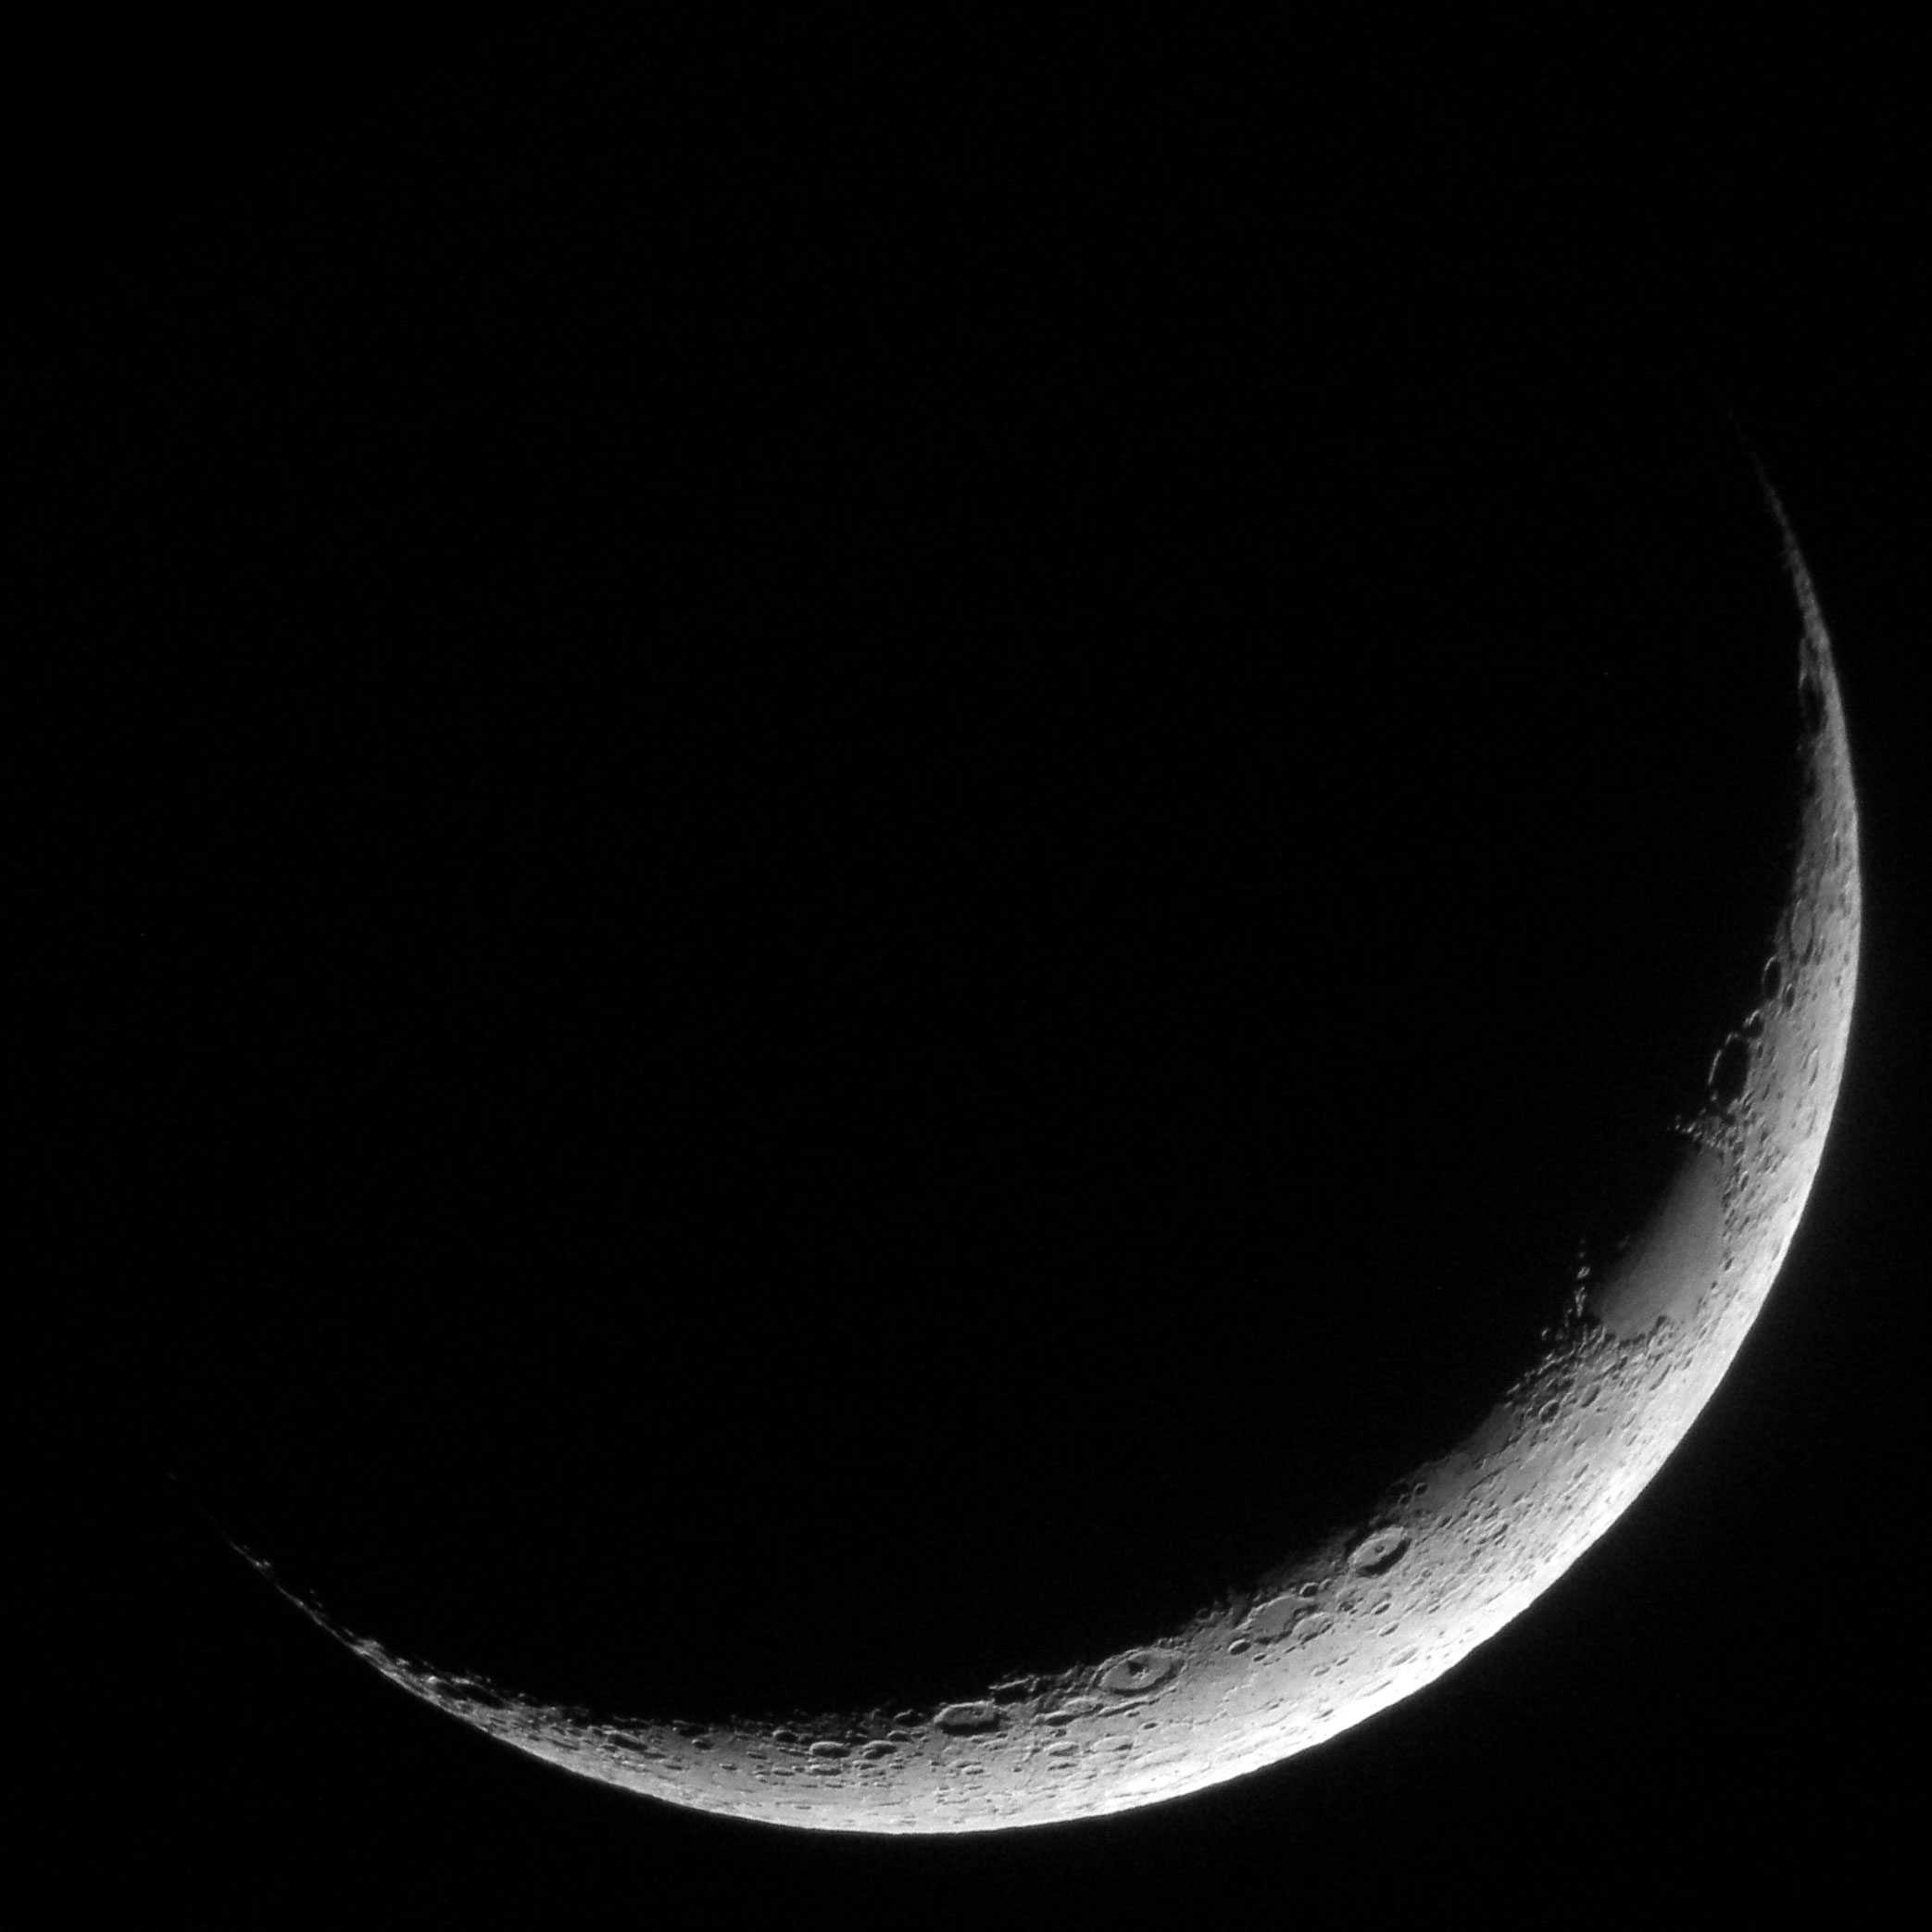 Crescent moon october 22 2017 benweb 32 crescent moon from my driveway in boca raton fl october 22 2017 put your cursor over the image or click here to view the labels of the most prominent biocorpaavc Images